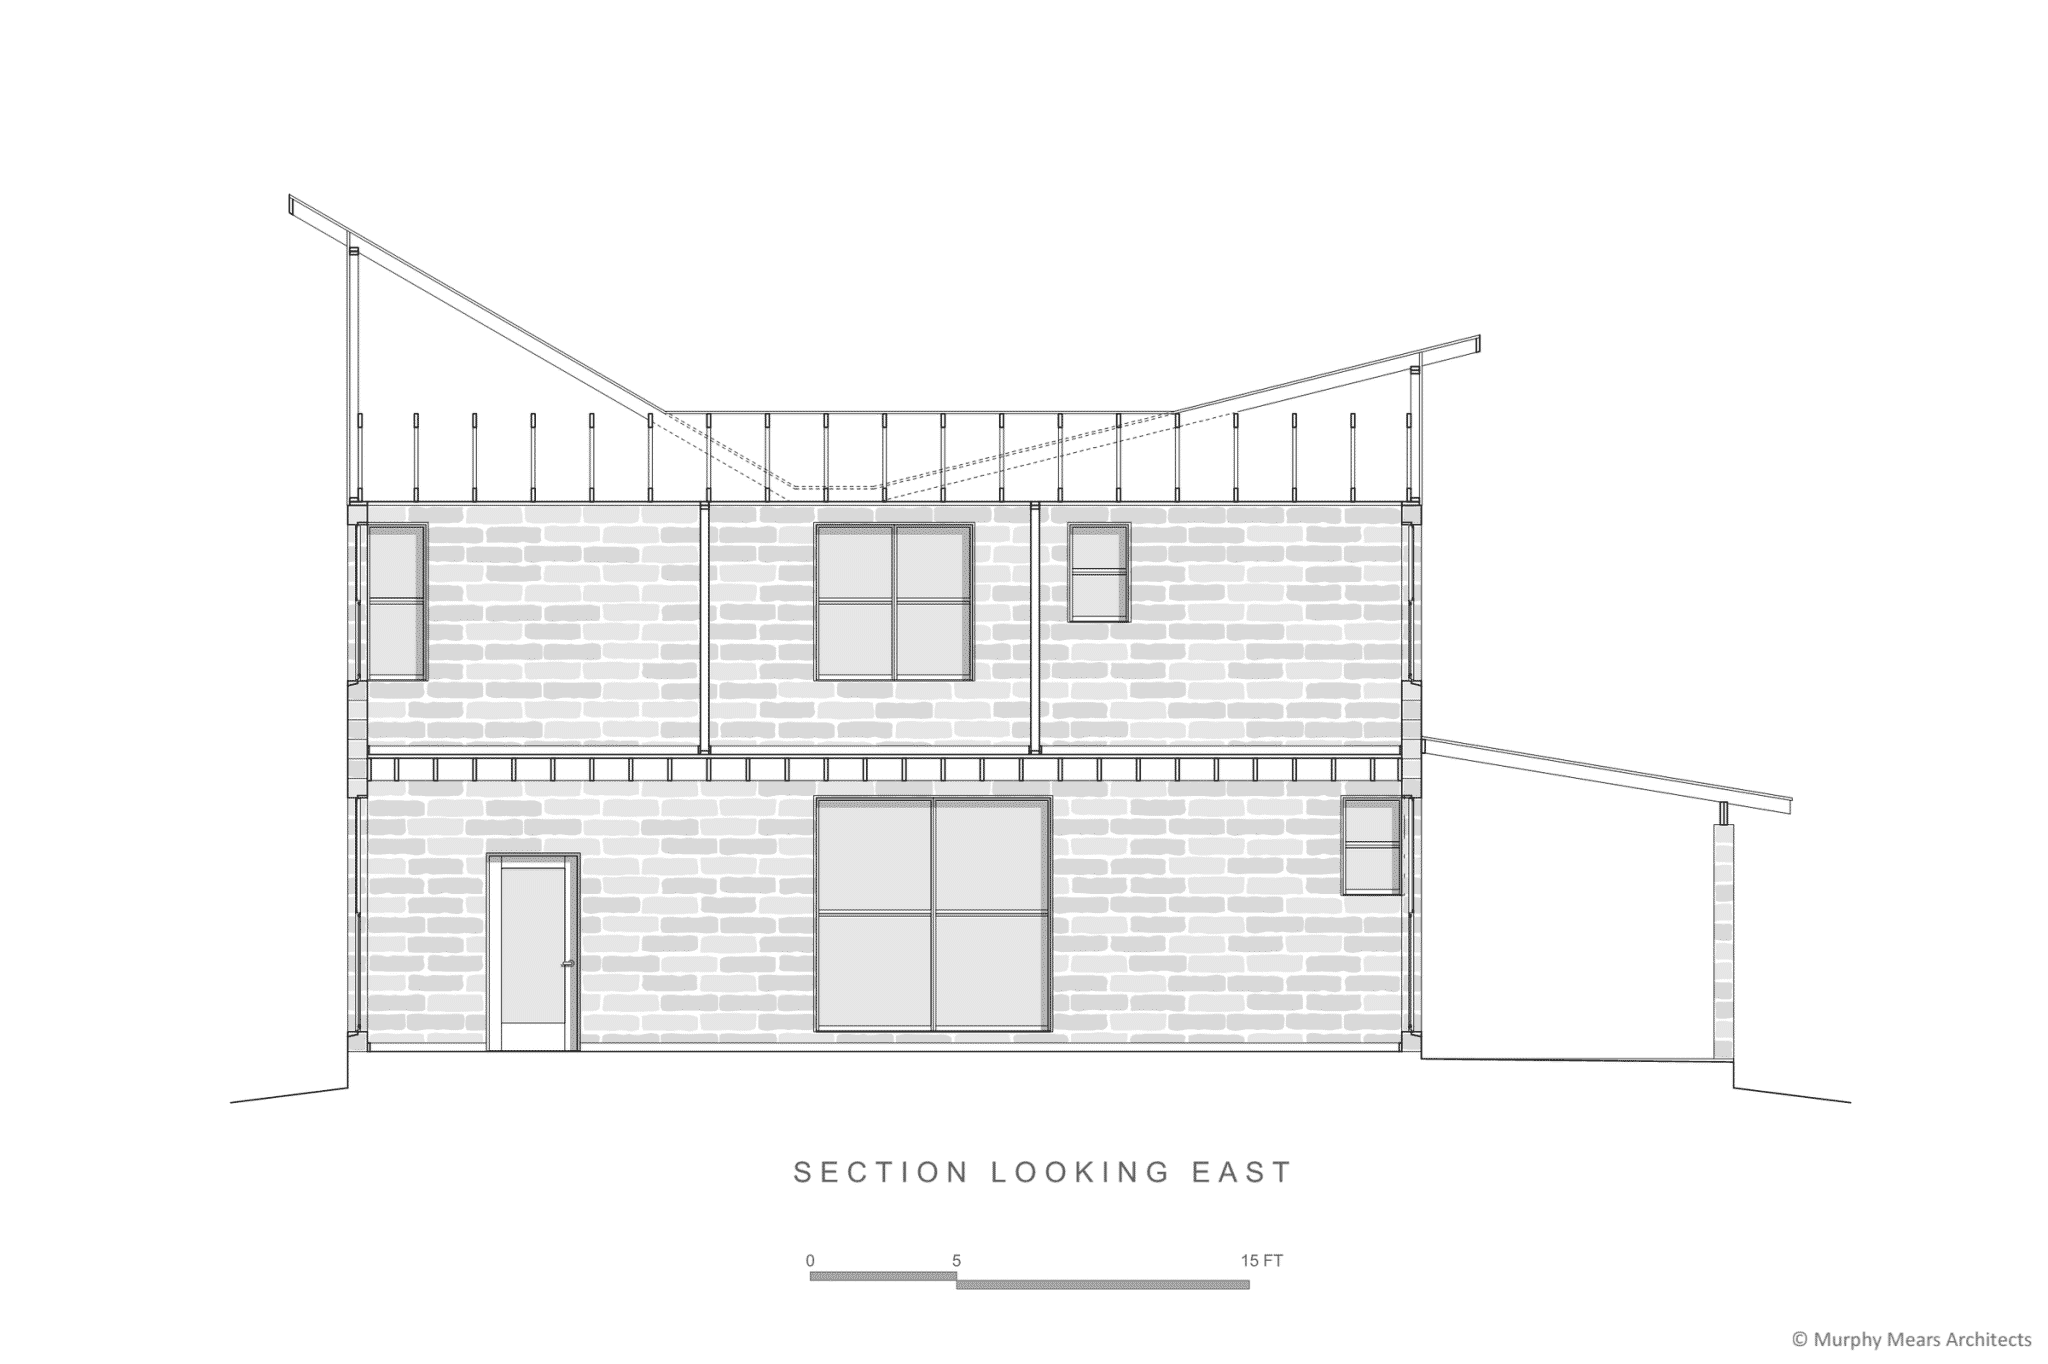 Section through open living-dining-kitchen on 1st floor with bedrooms above.